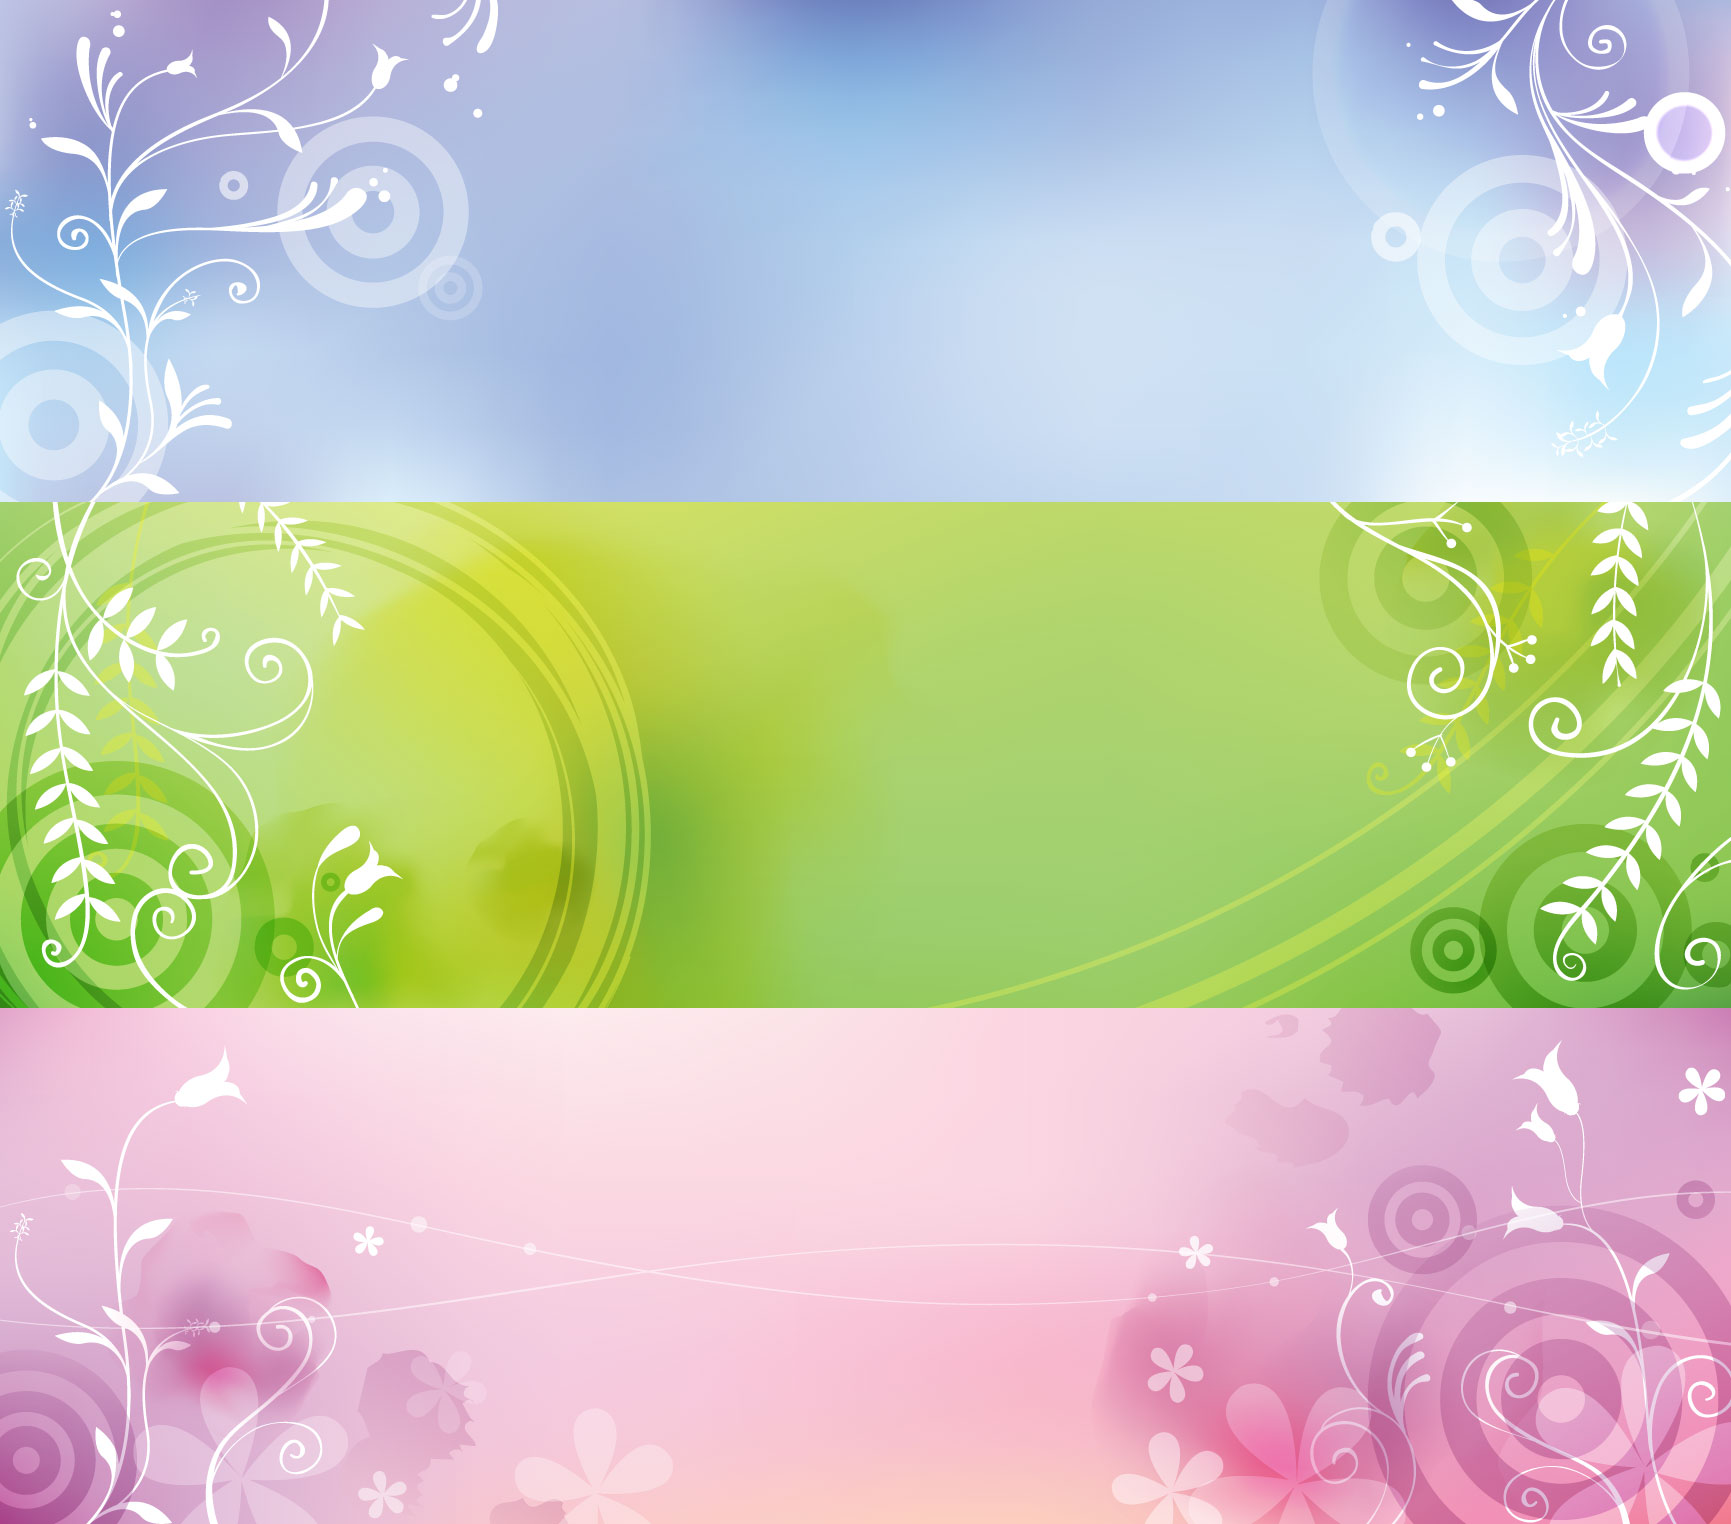 1731x1524 Download Free Elegant Plant Banners Vector Graphic Template